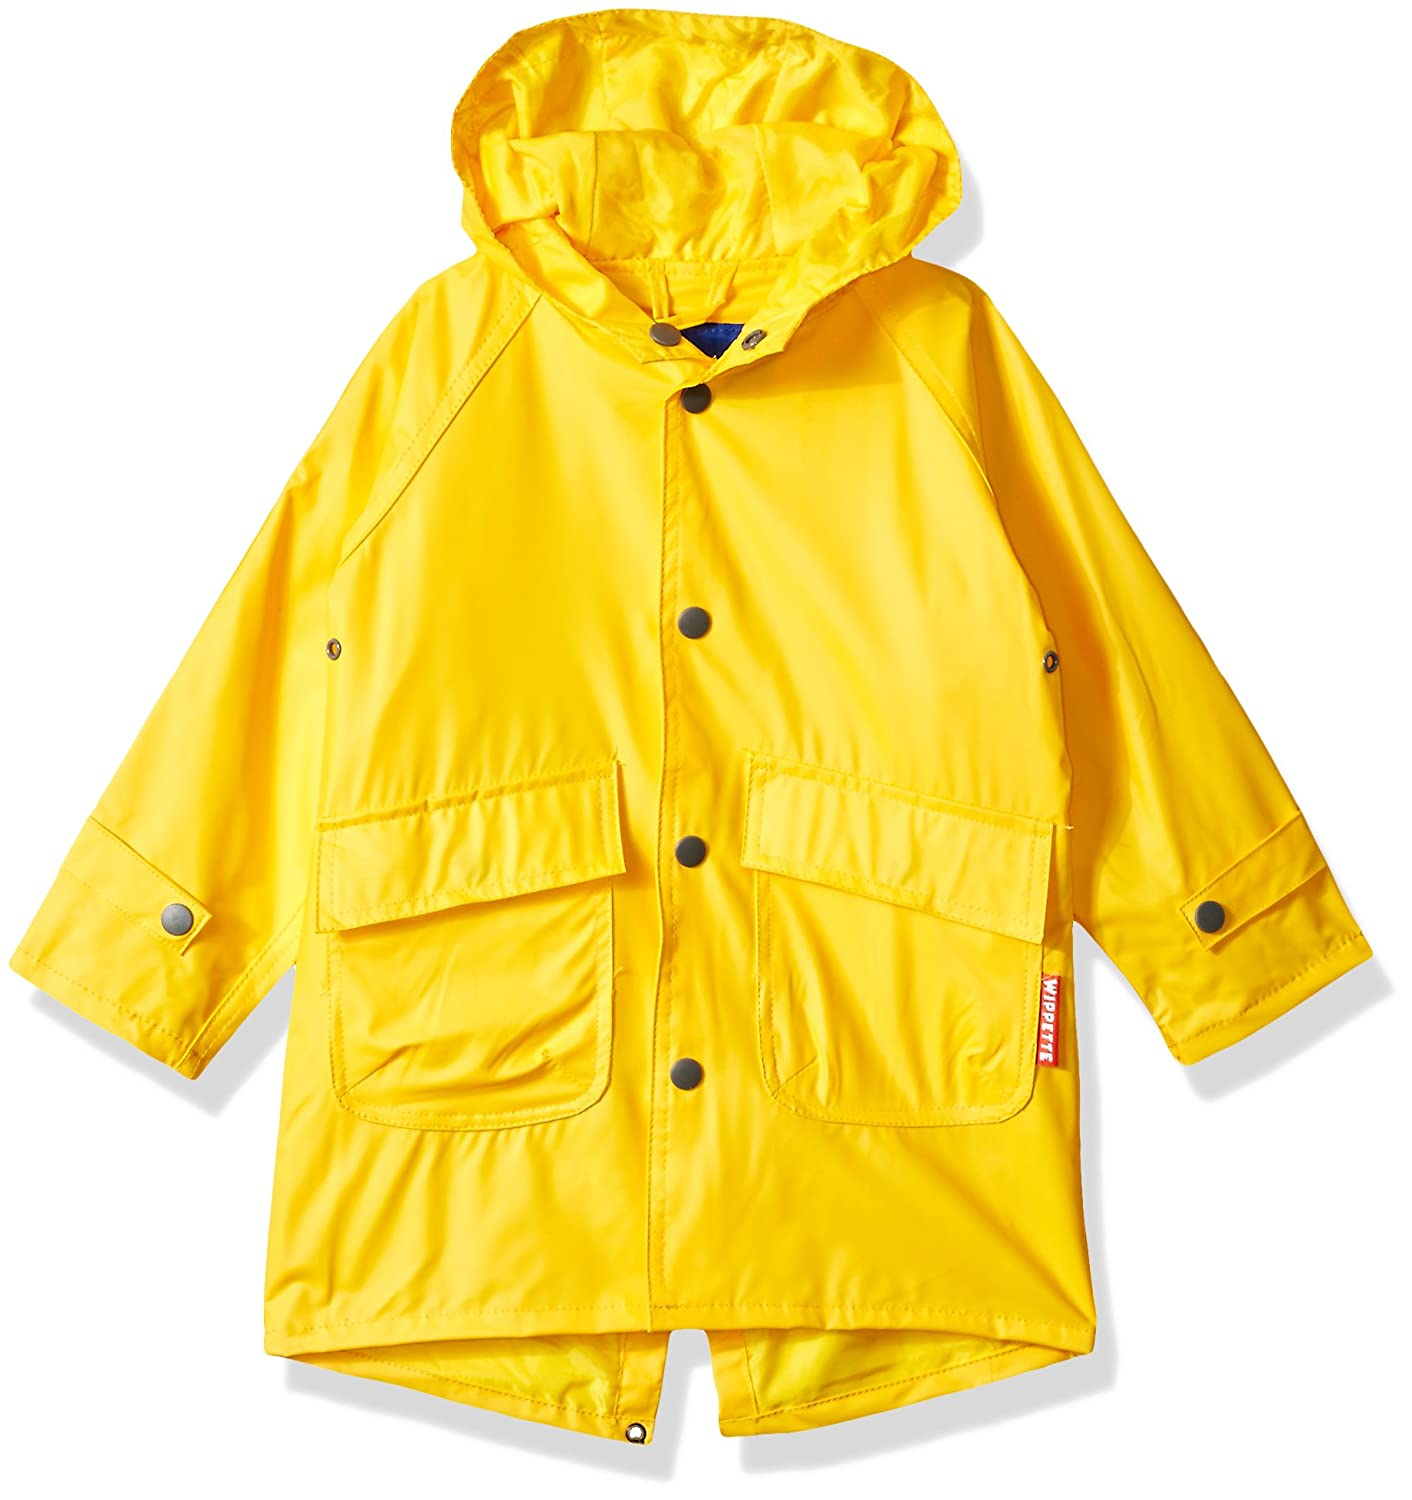 Wippette Solid Color Boys Raincoat 85021